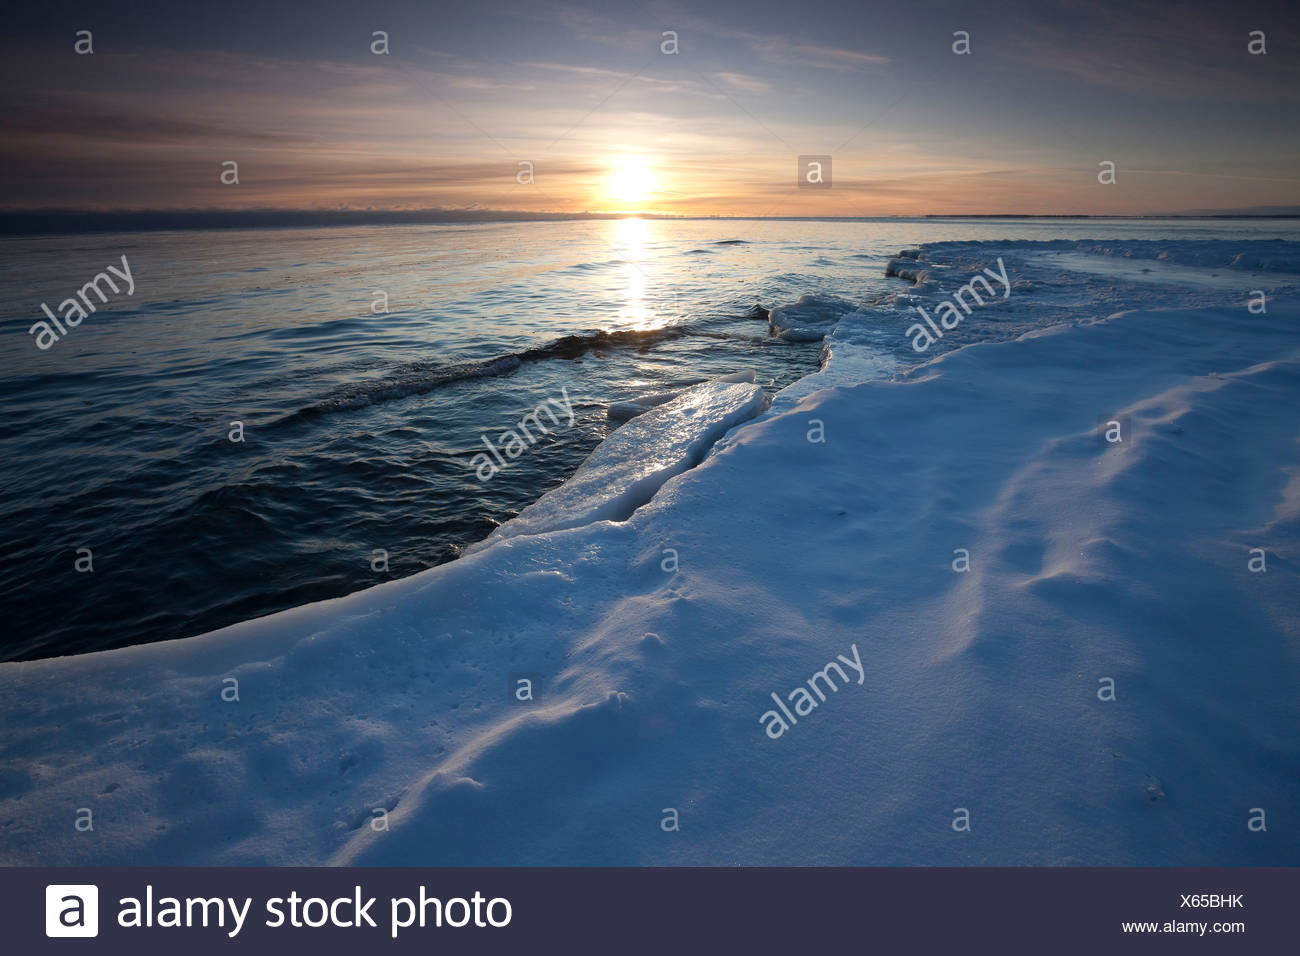 A winter's dawn on the snow covered shores of Lake Ontario in Presqu'ile Provincial Park, Ontario, Canada - Stock Image